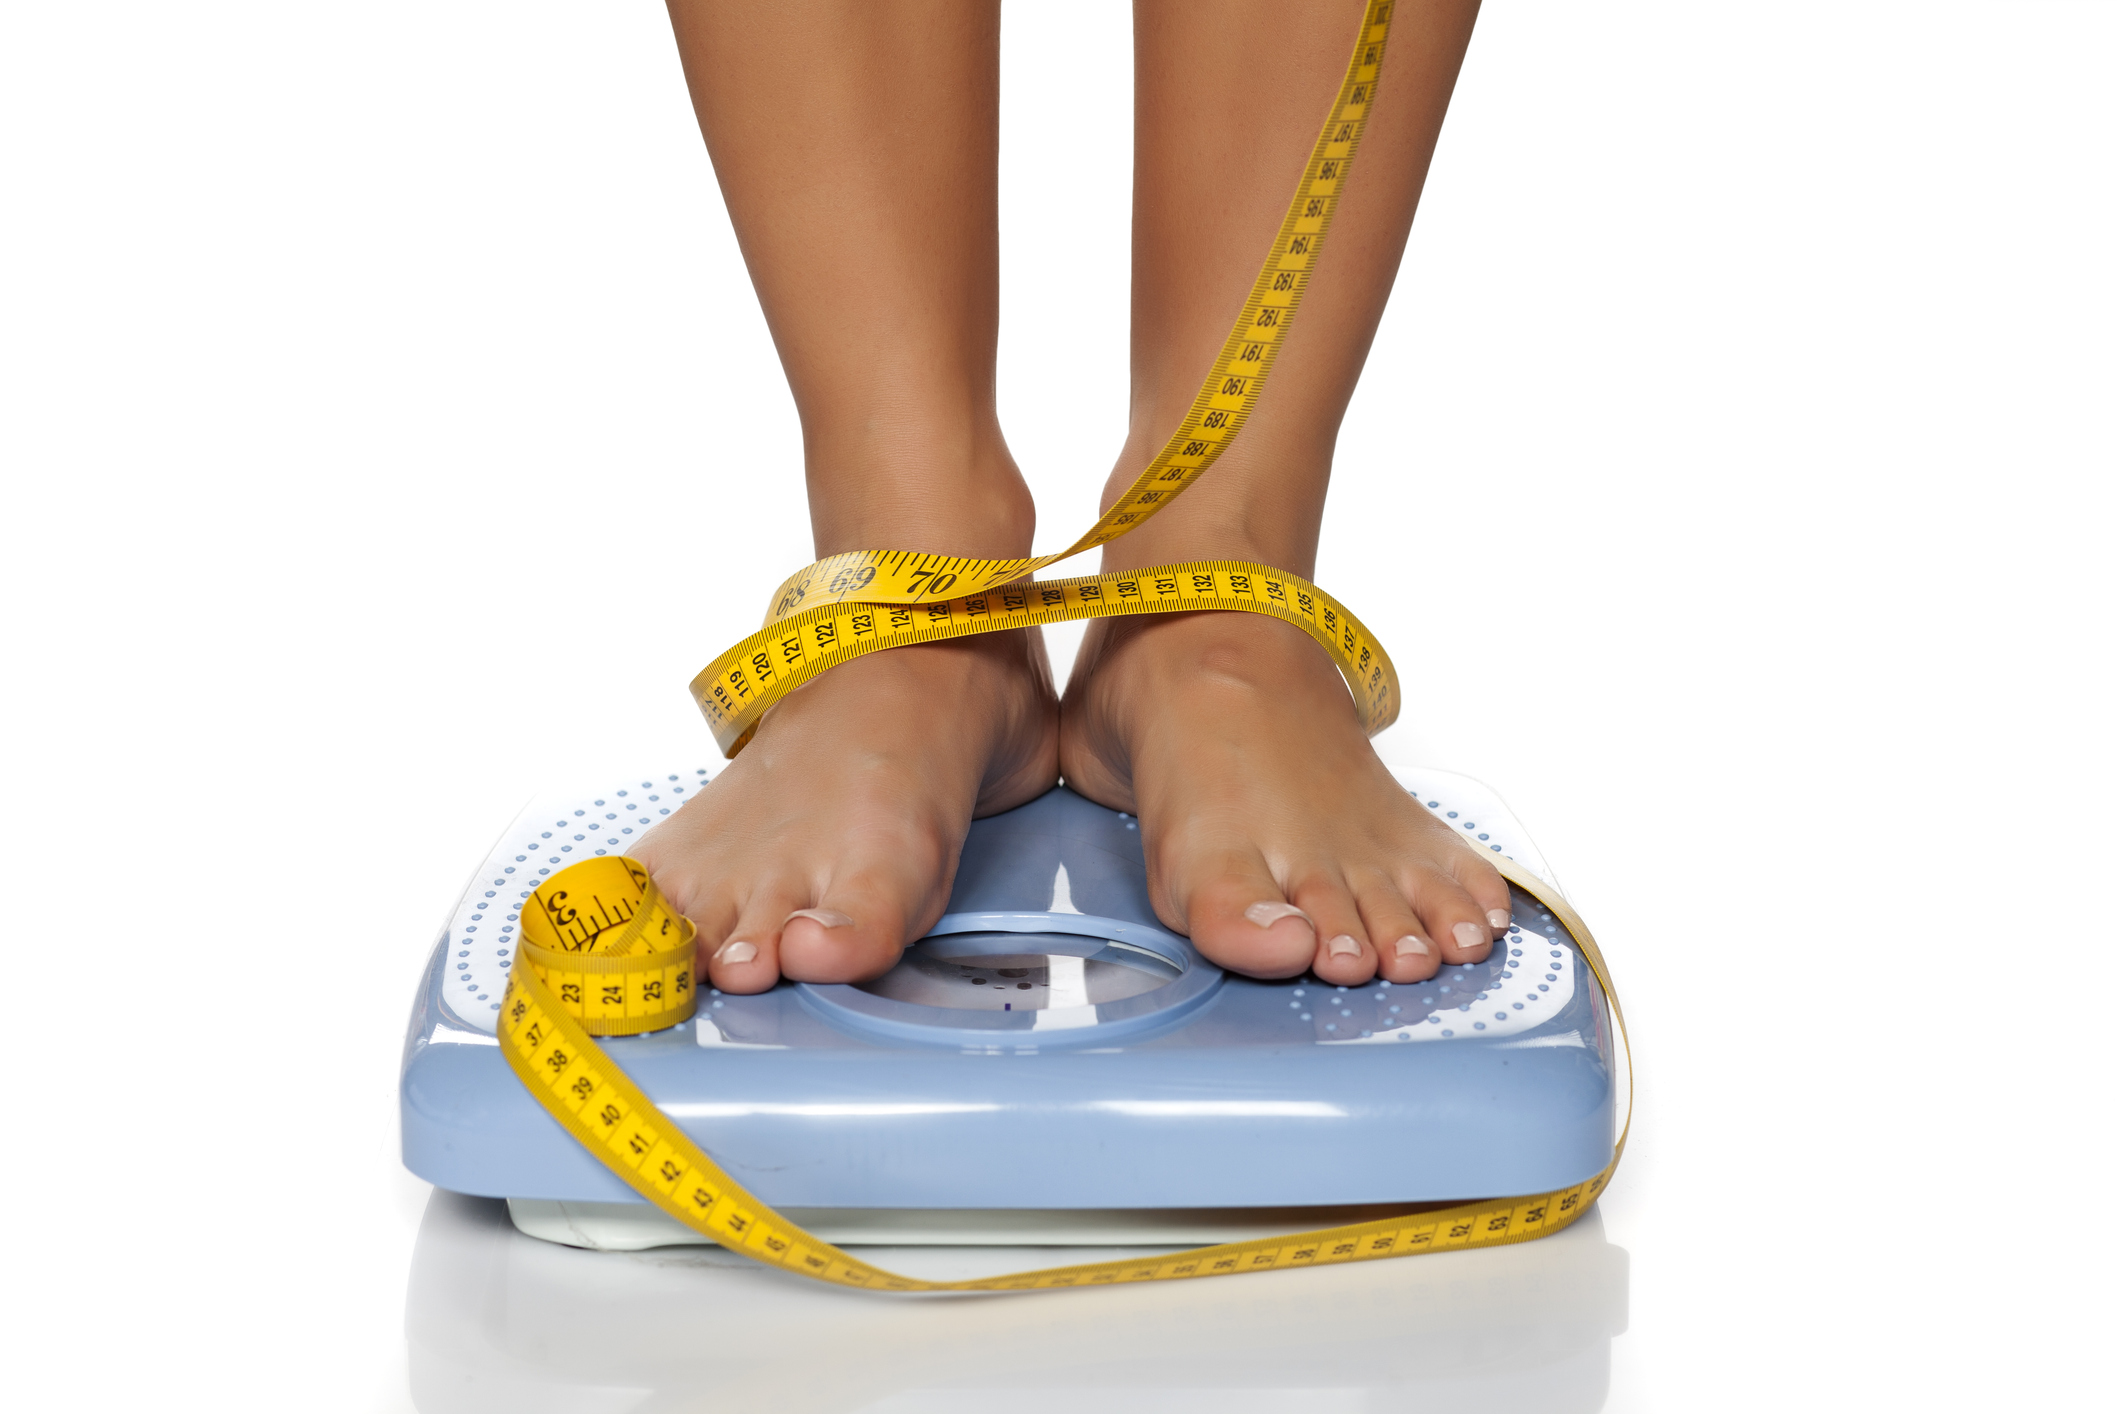 weight scale.jpg